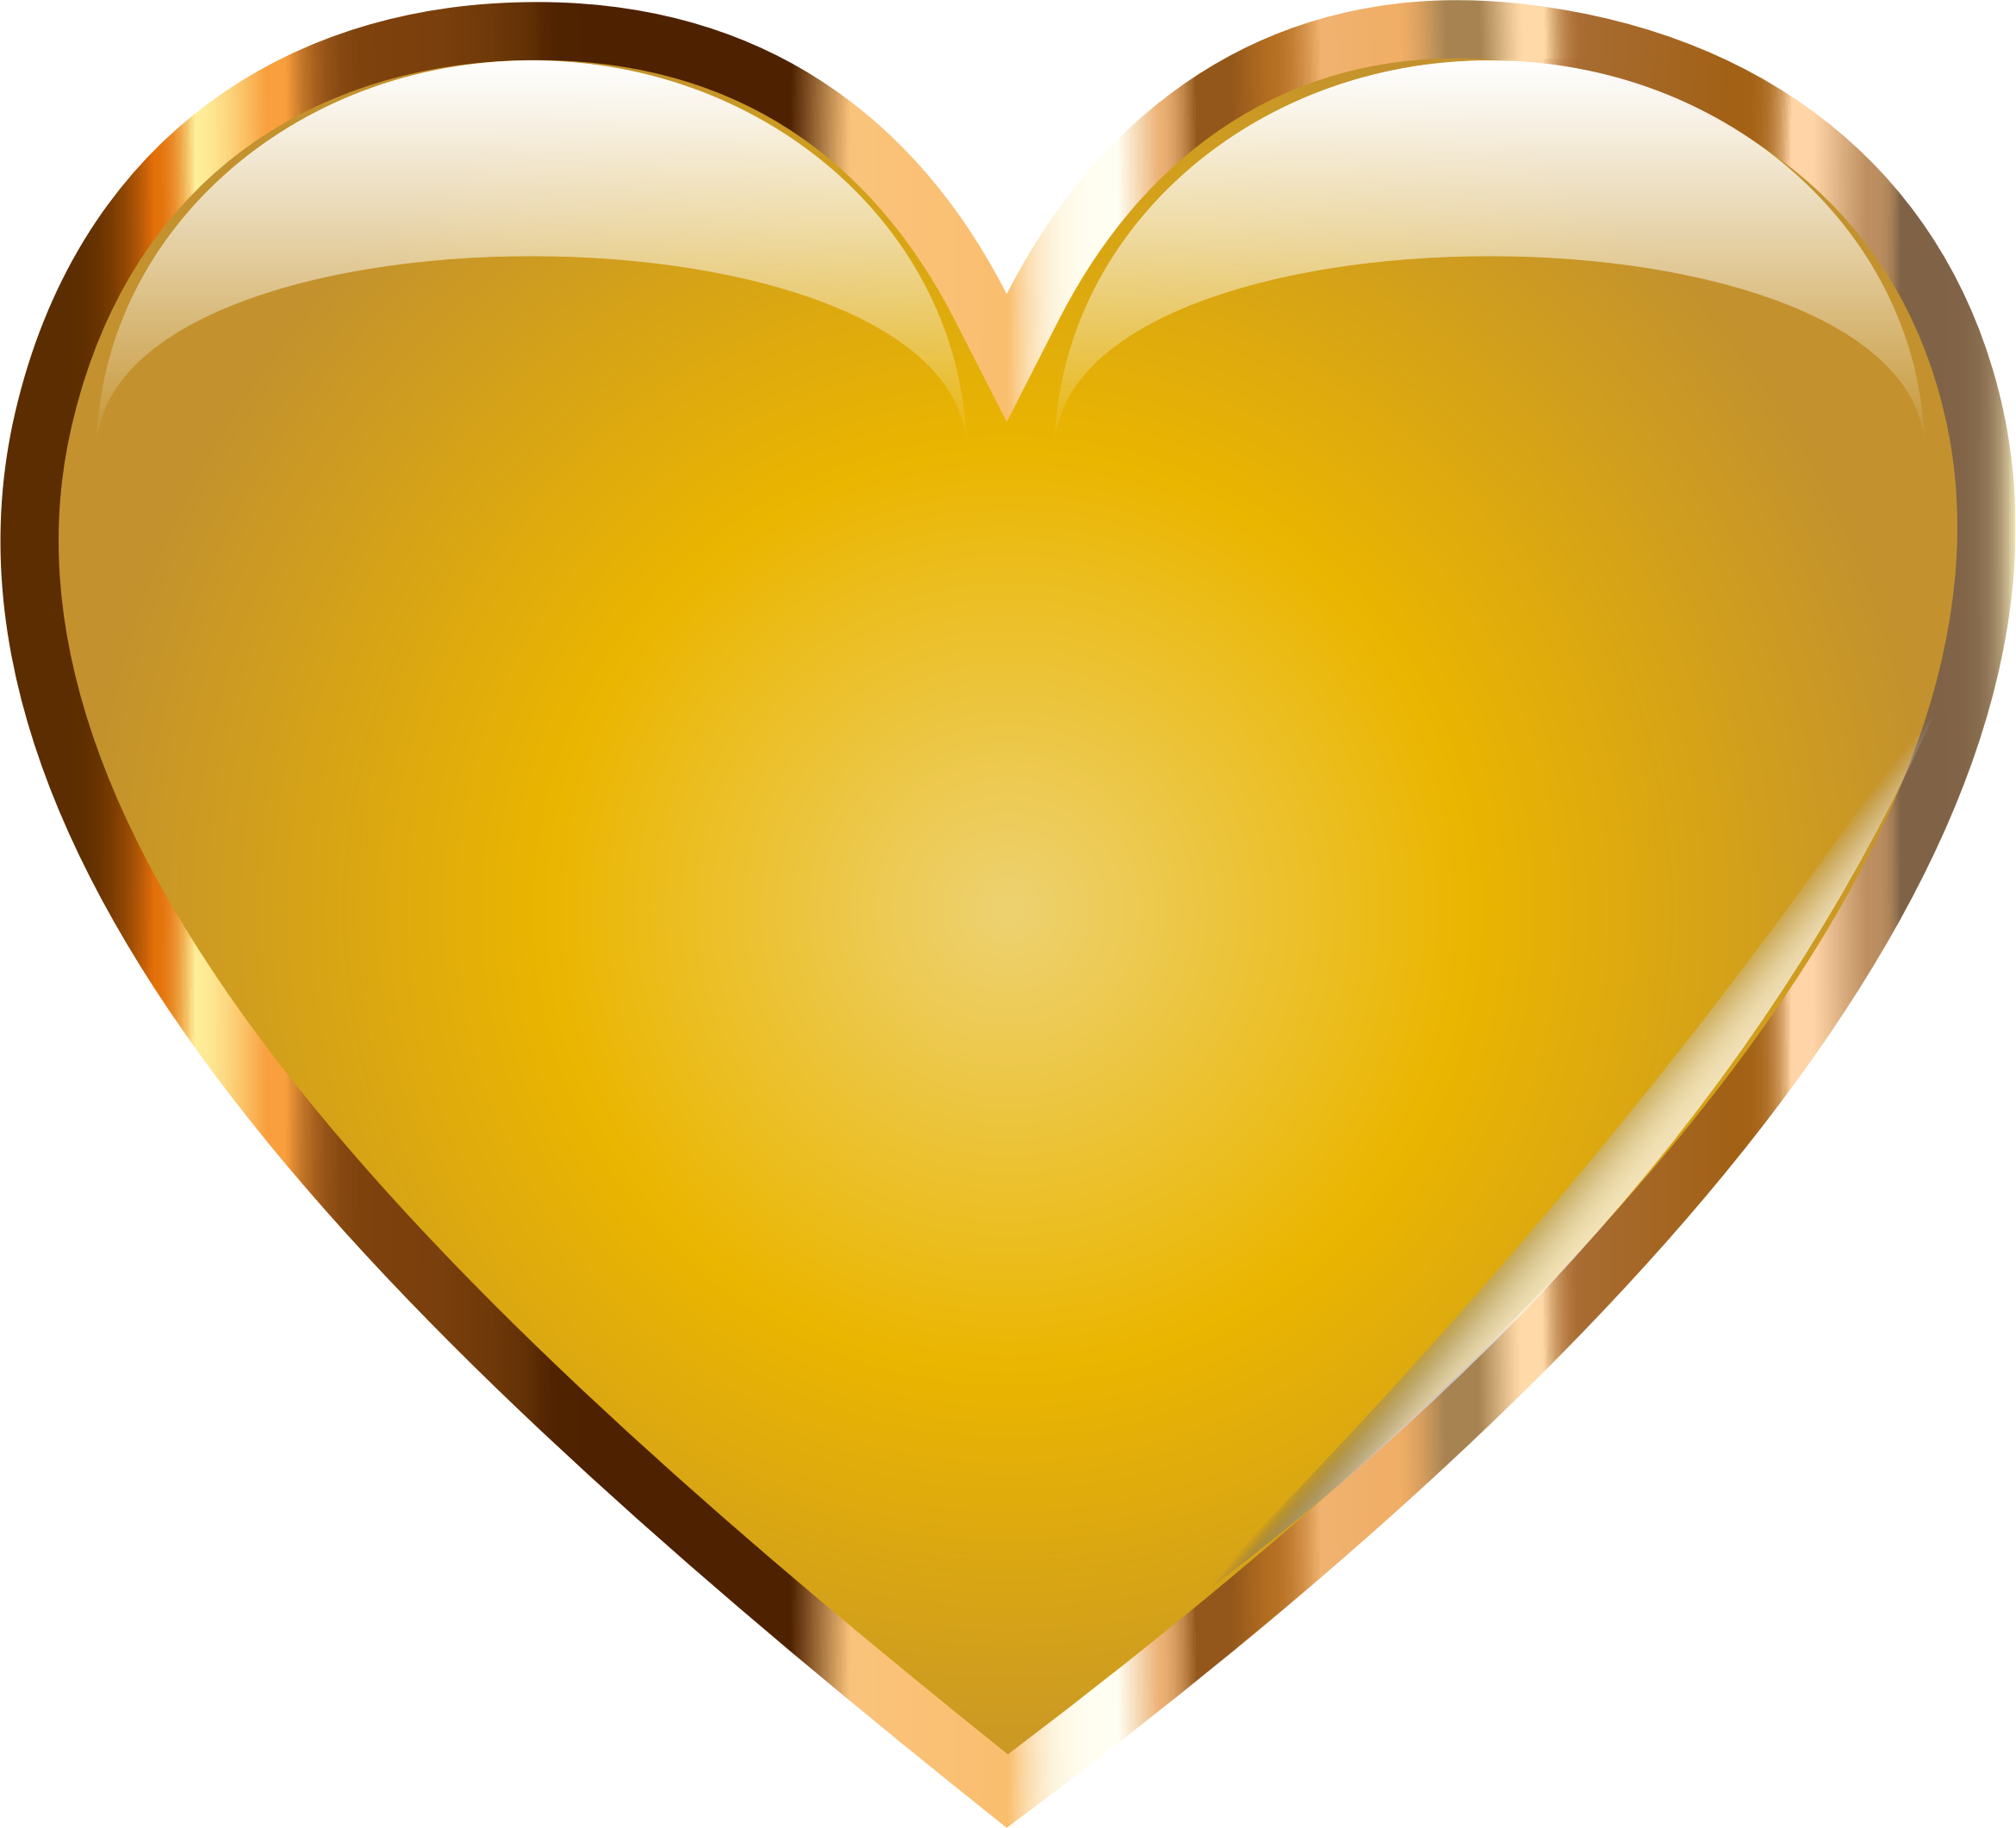 Golden hearts clipart - Clipground